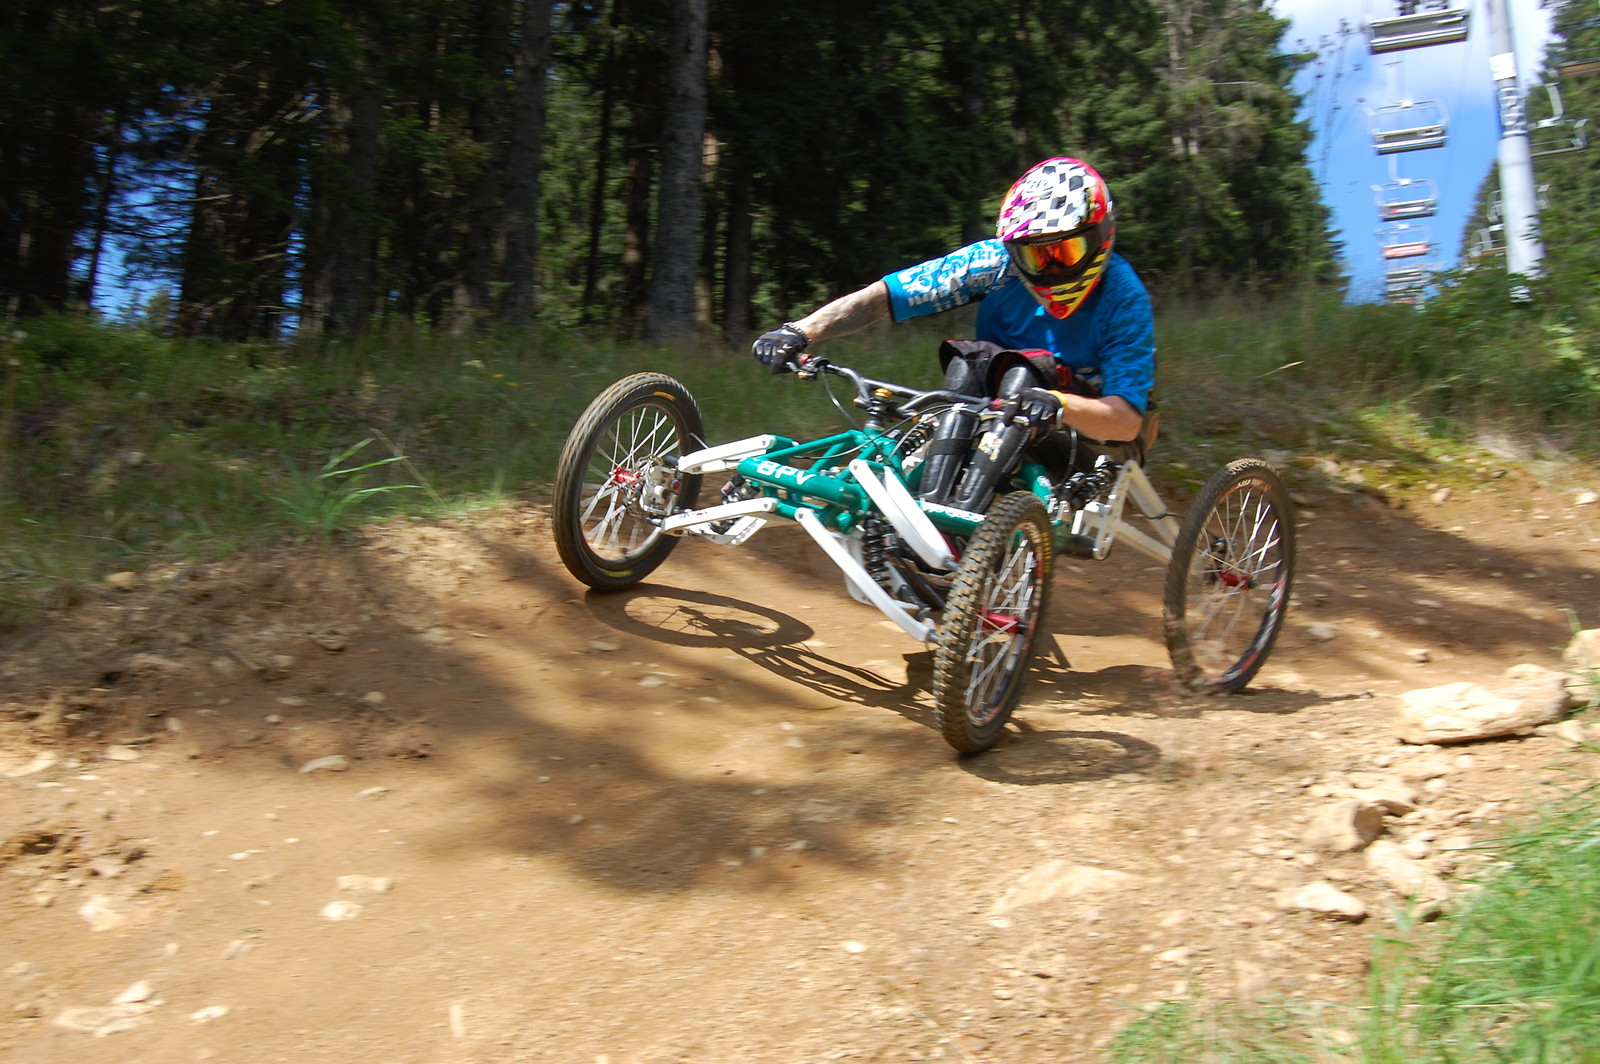 DSC 0058 - wozikmajkl83 - Mountain Biking Pictures - Vital MTB